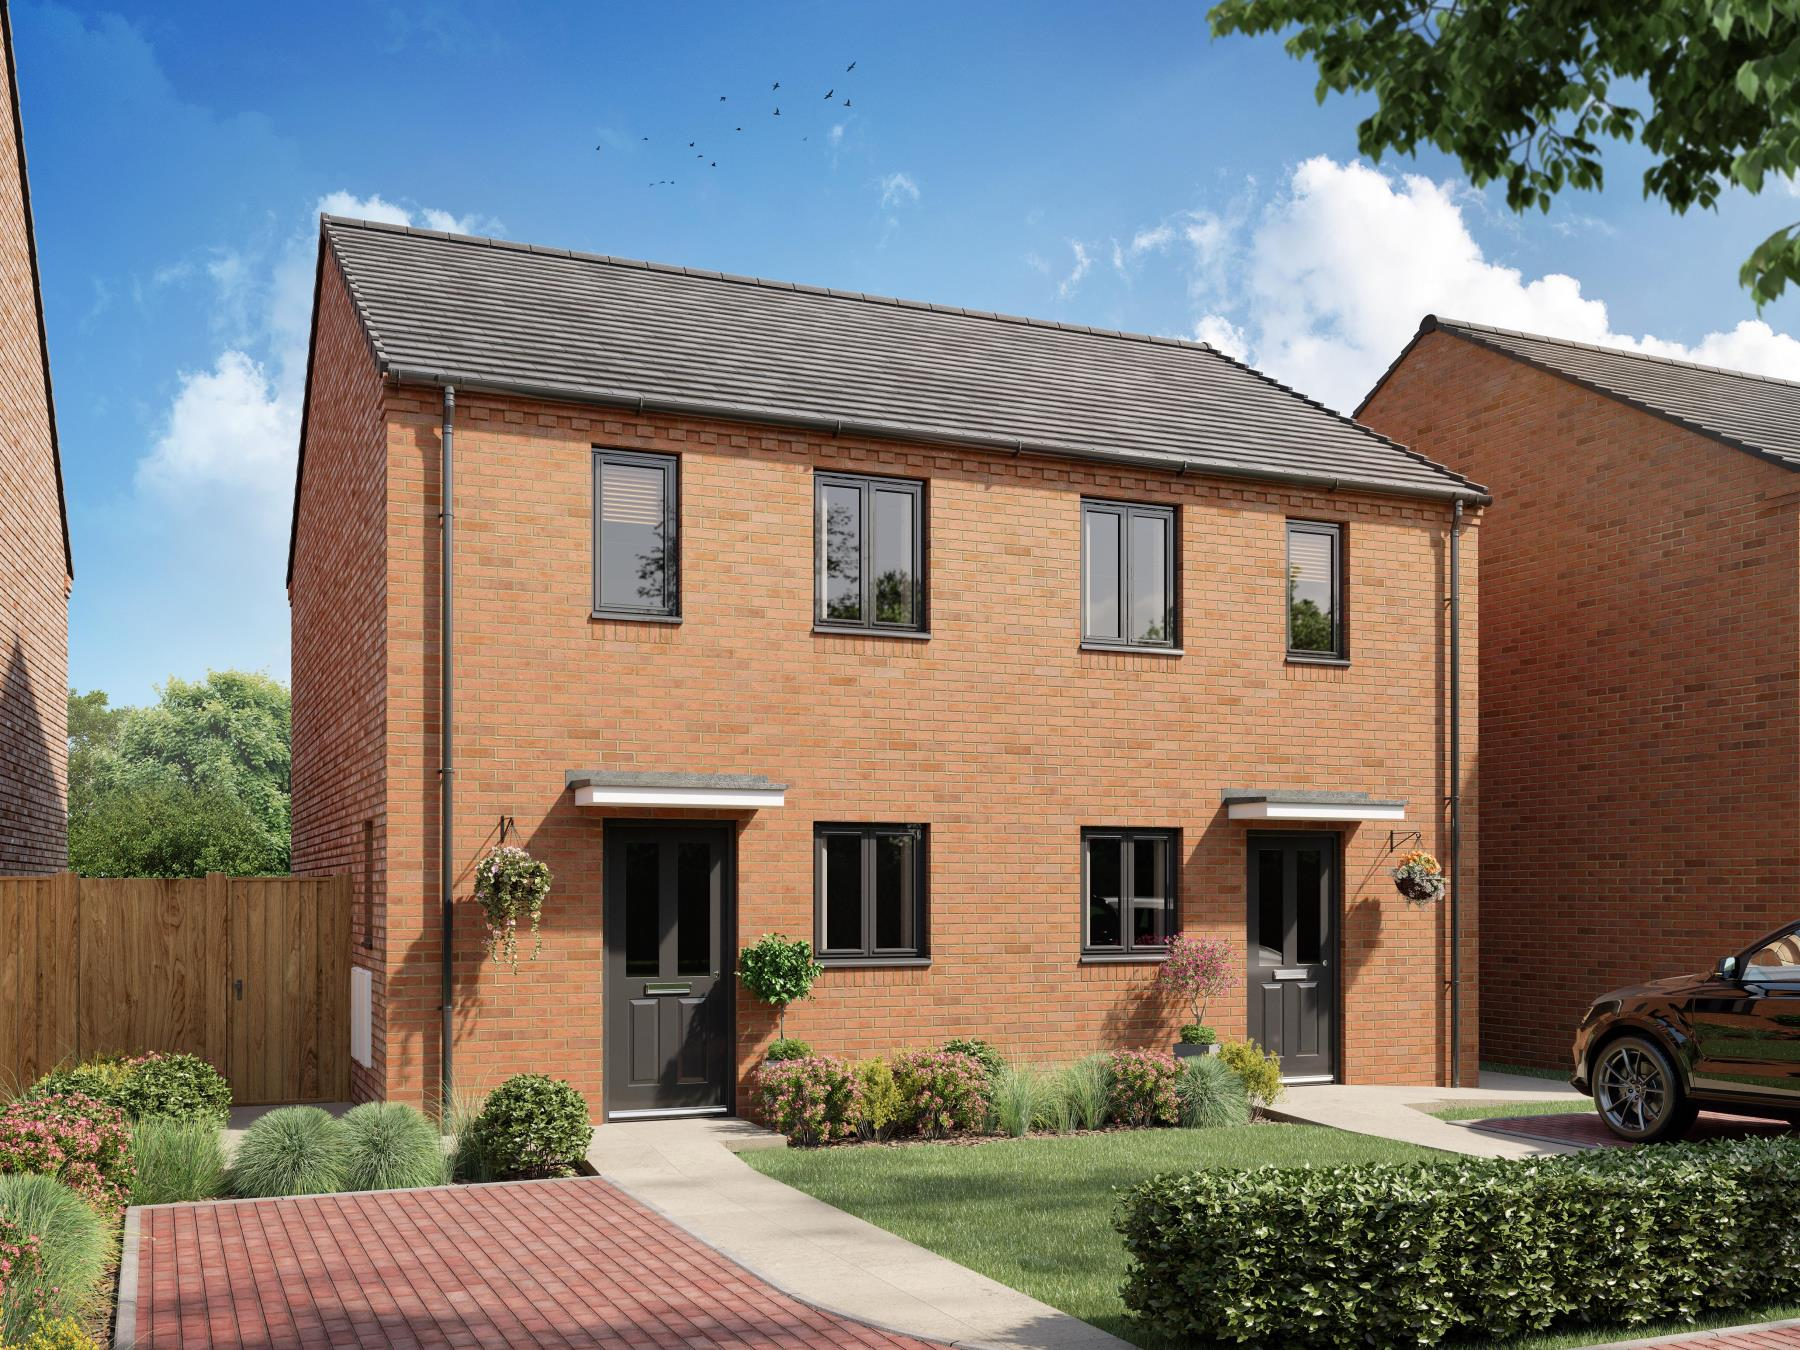 TA25 - Plots 14-15 Canford